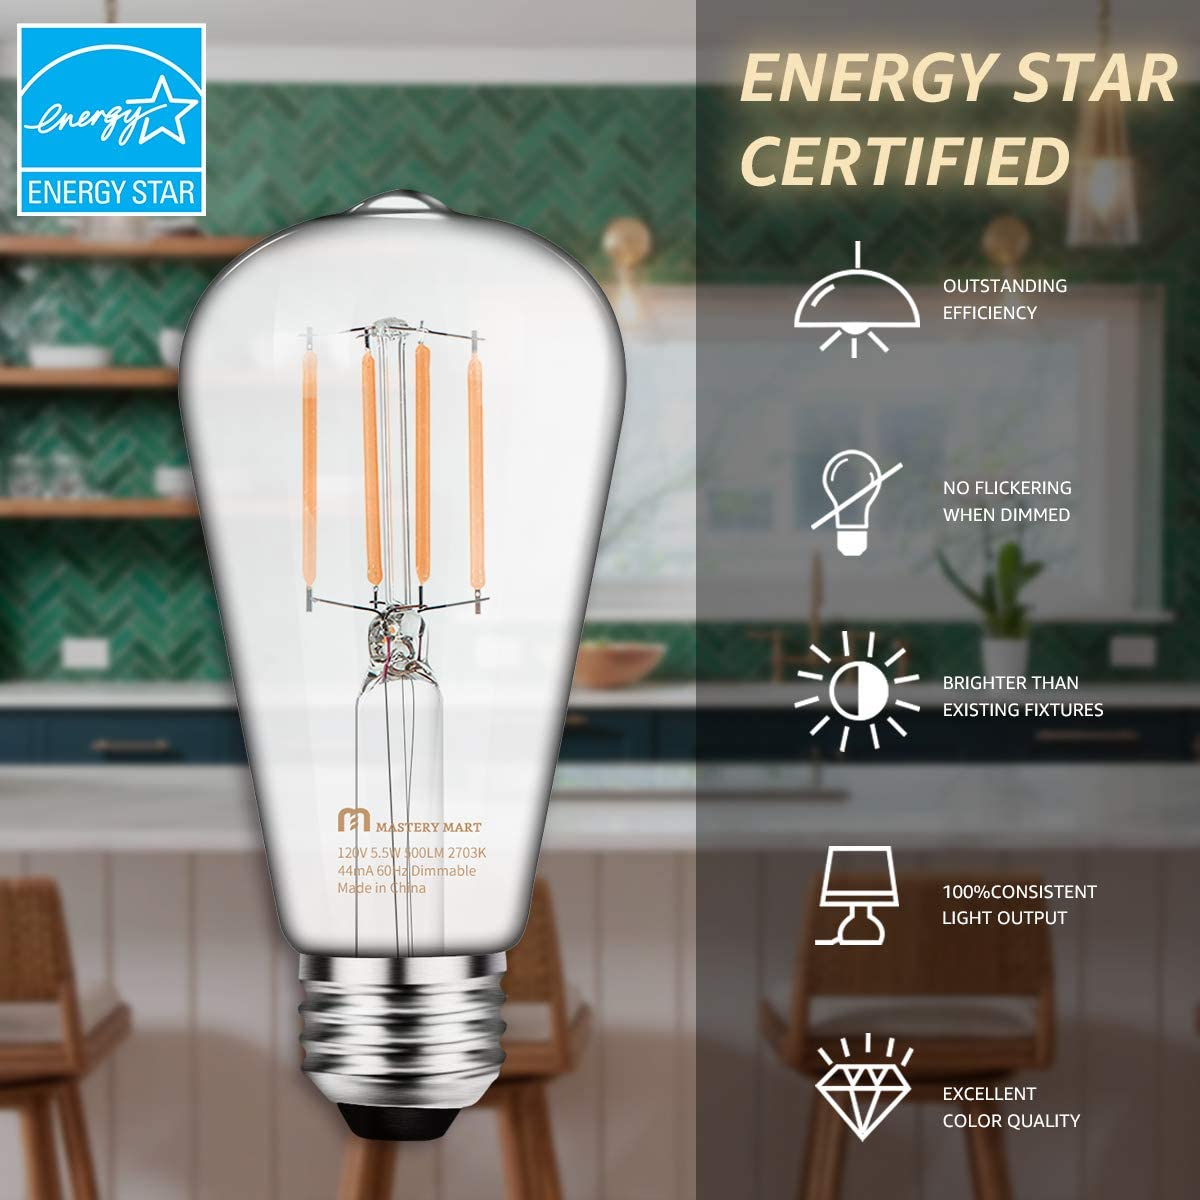 Dimmable 5.5W 60 Watt Equivalent UL and Energy Star 6 Pack Mastery Mart Vintage LED Light Bulb 500LM 5000K Daylight White E26 Decorative Filament Bulb Glass ST21 Antique Edison Style